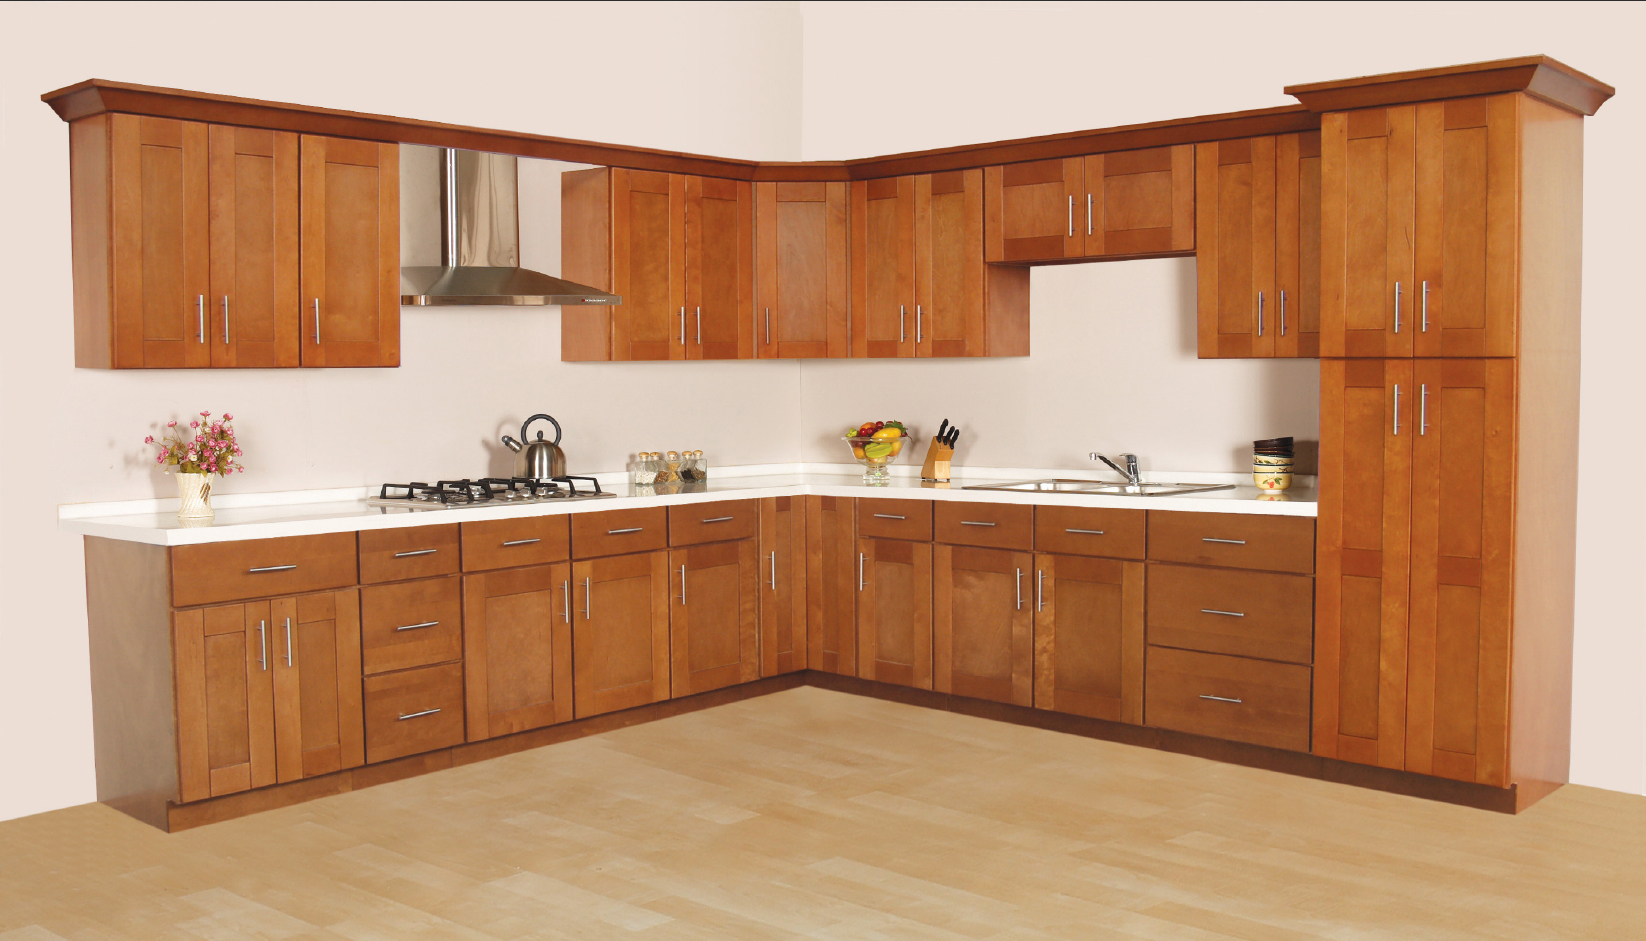 menards kitchen cabinet price and details home and ForCabinets Kitchen Cabinets